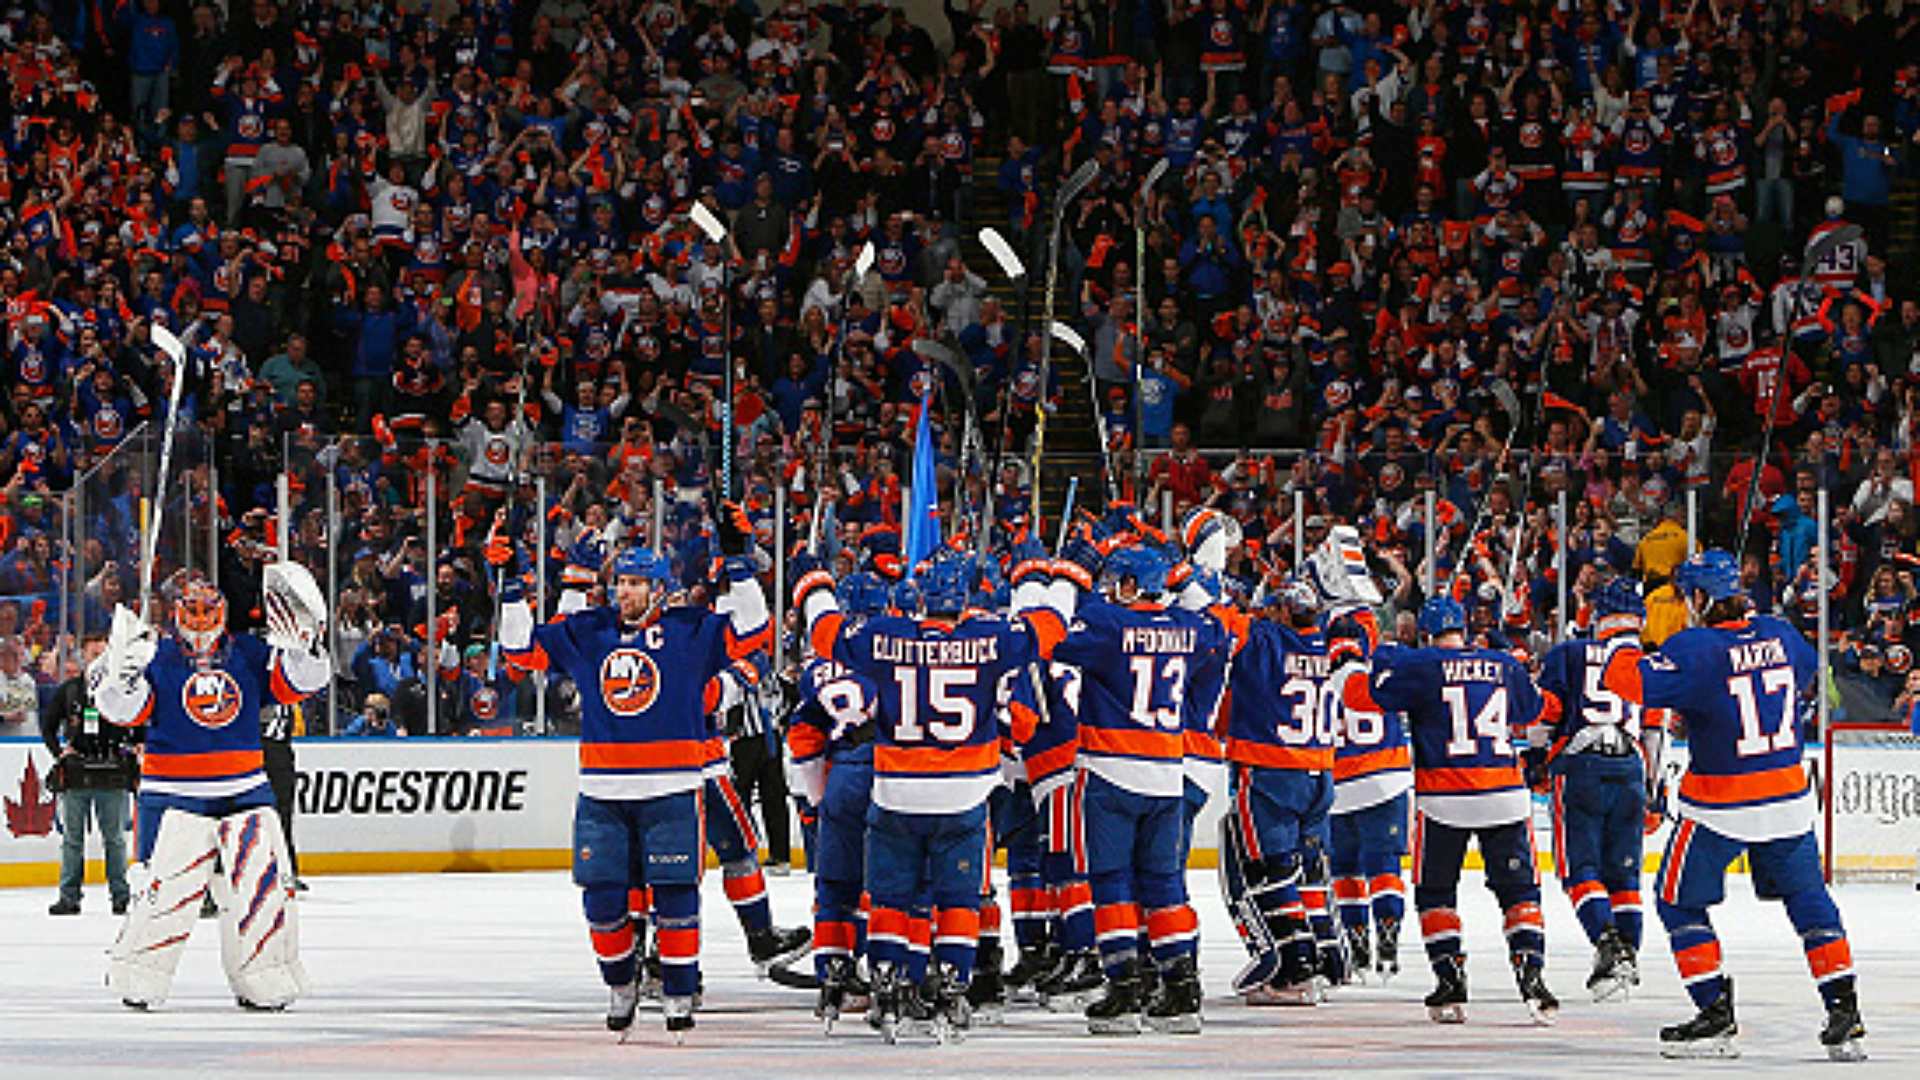 Stanley Cup playoffs roundup: Islanders stave off elimination; Blackhawks, Flames close out series